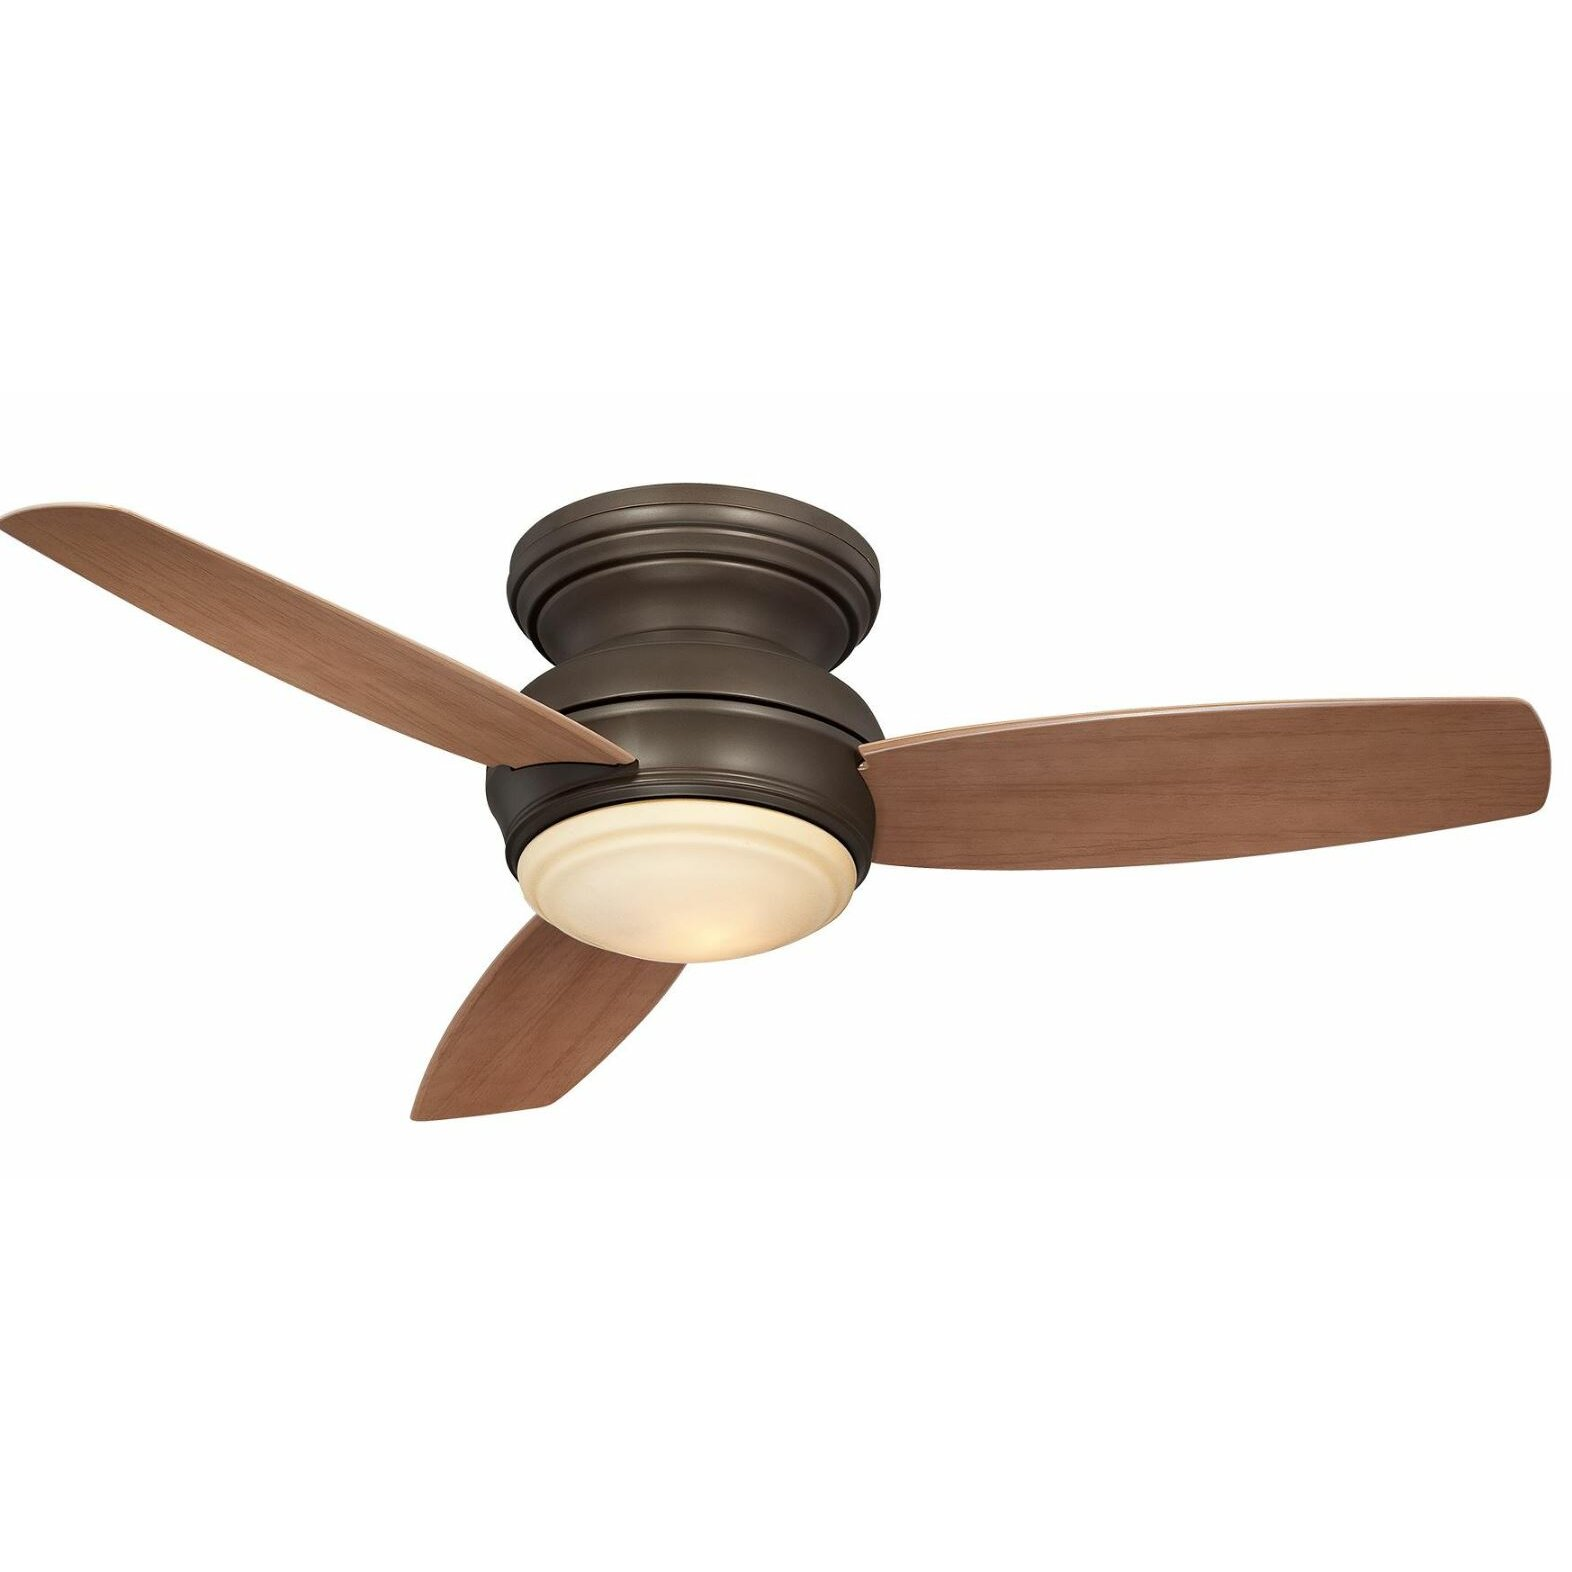 44 Ceiling Fan : Minka aire quot traditional concept blade ceiling fan